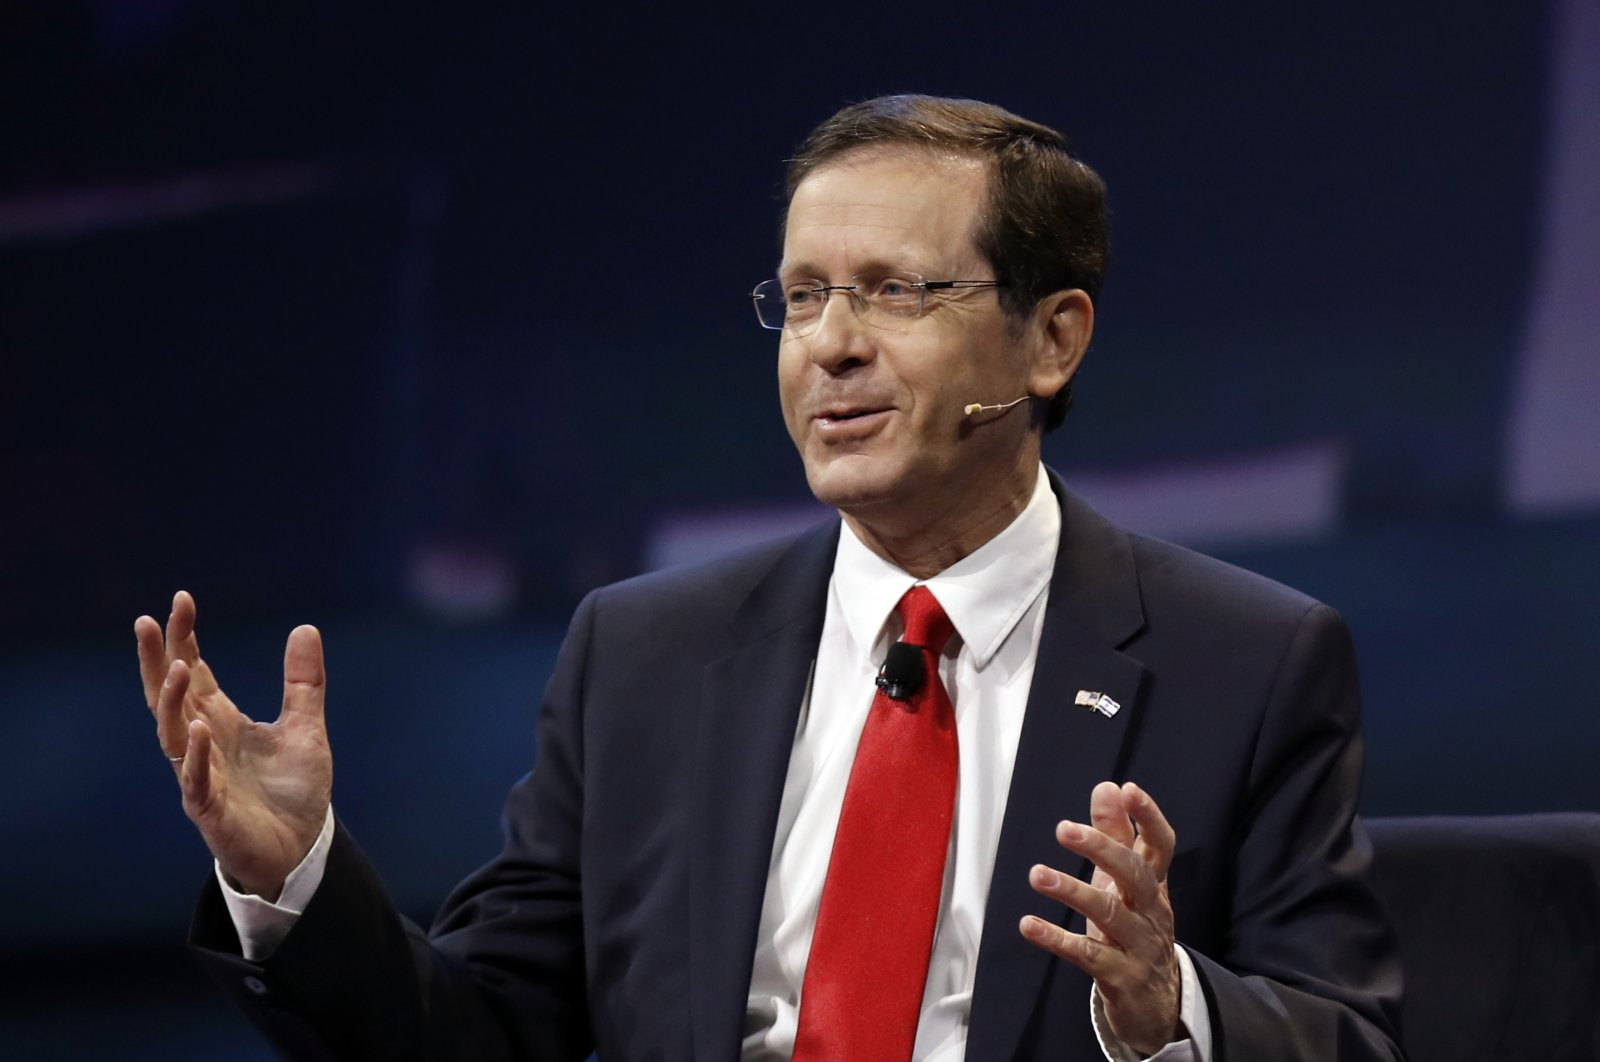 Isaac Herzog speaks at the AIPAC Policy Conference in Washington, D.C., U.S., March 27, 2017. (AP File Photo)